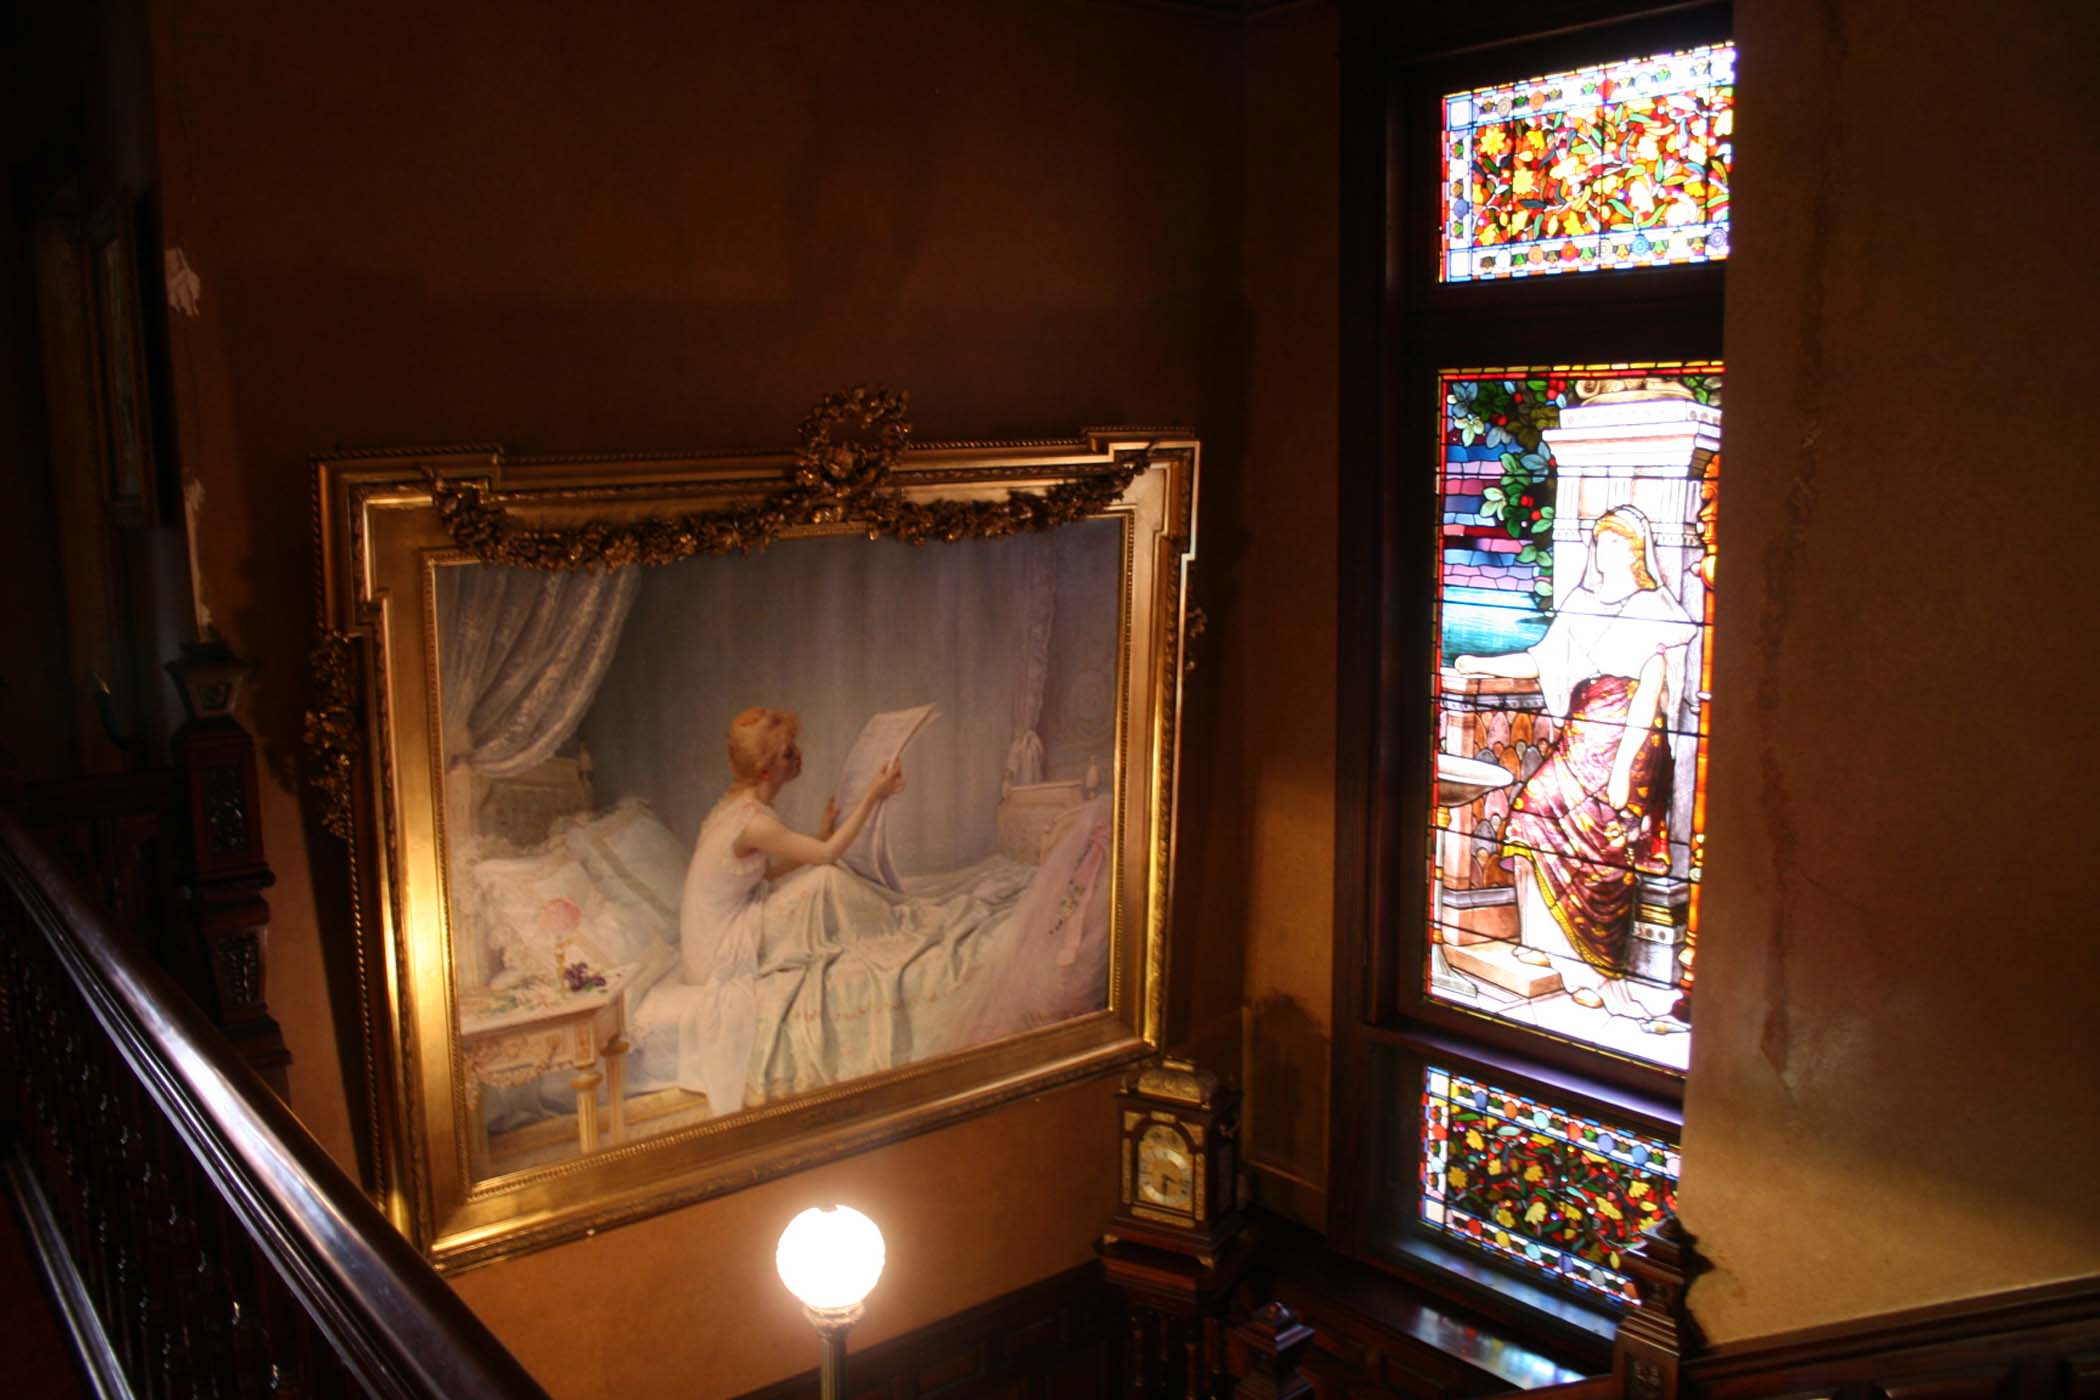 This large painting by Abraham Archibald Anderson was obtained in Paris, and now hangs in the grand staircase of the Edison Glenmont mansion. Mr. Anderson served as a friend and interpreter for Mr. Edison while in Paris.